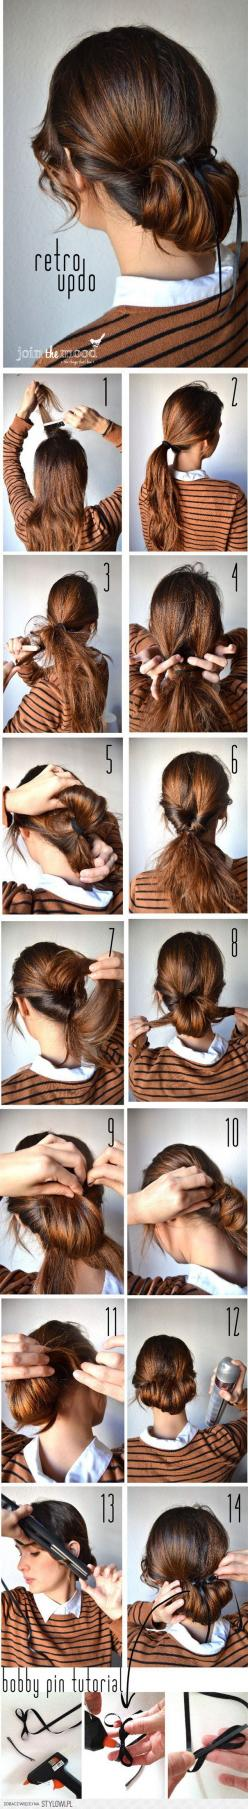 Updo for longer hair.: Updo Hairstyle, Retro Updo, Hairstyles, Hair Styles, Hair Tutorial, Makeup, Beauty, Bobby Pin